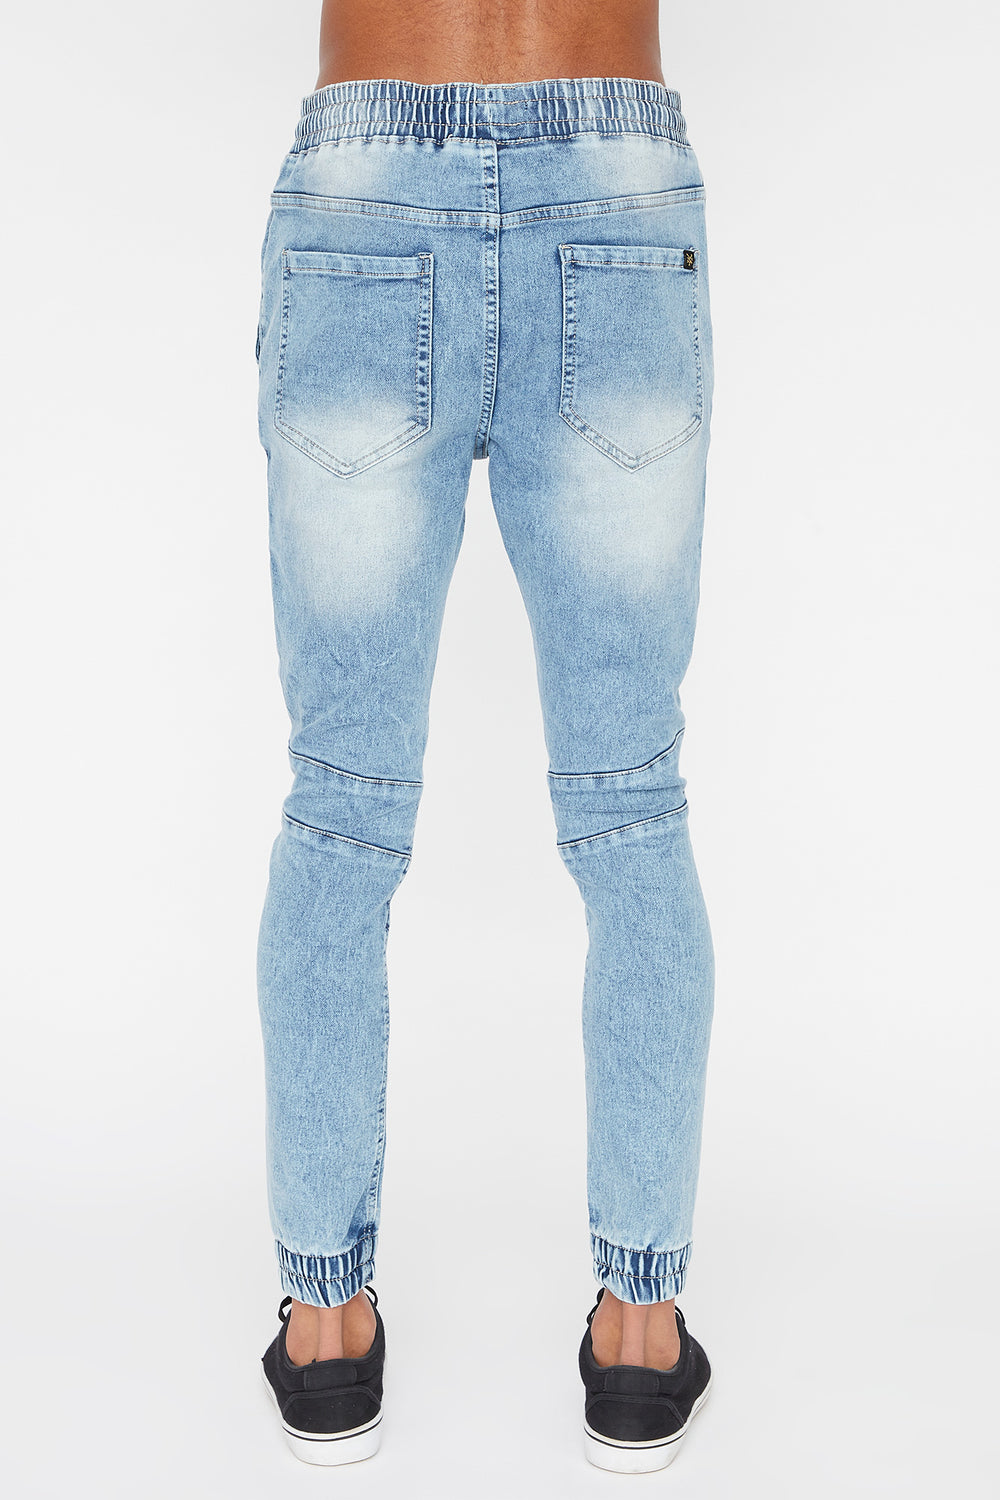 Zoo York Mens 5-Pocket Light Wash Jogger Jean Baby Blue